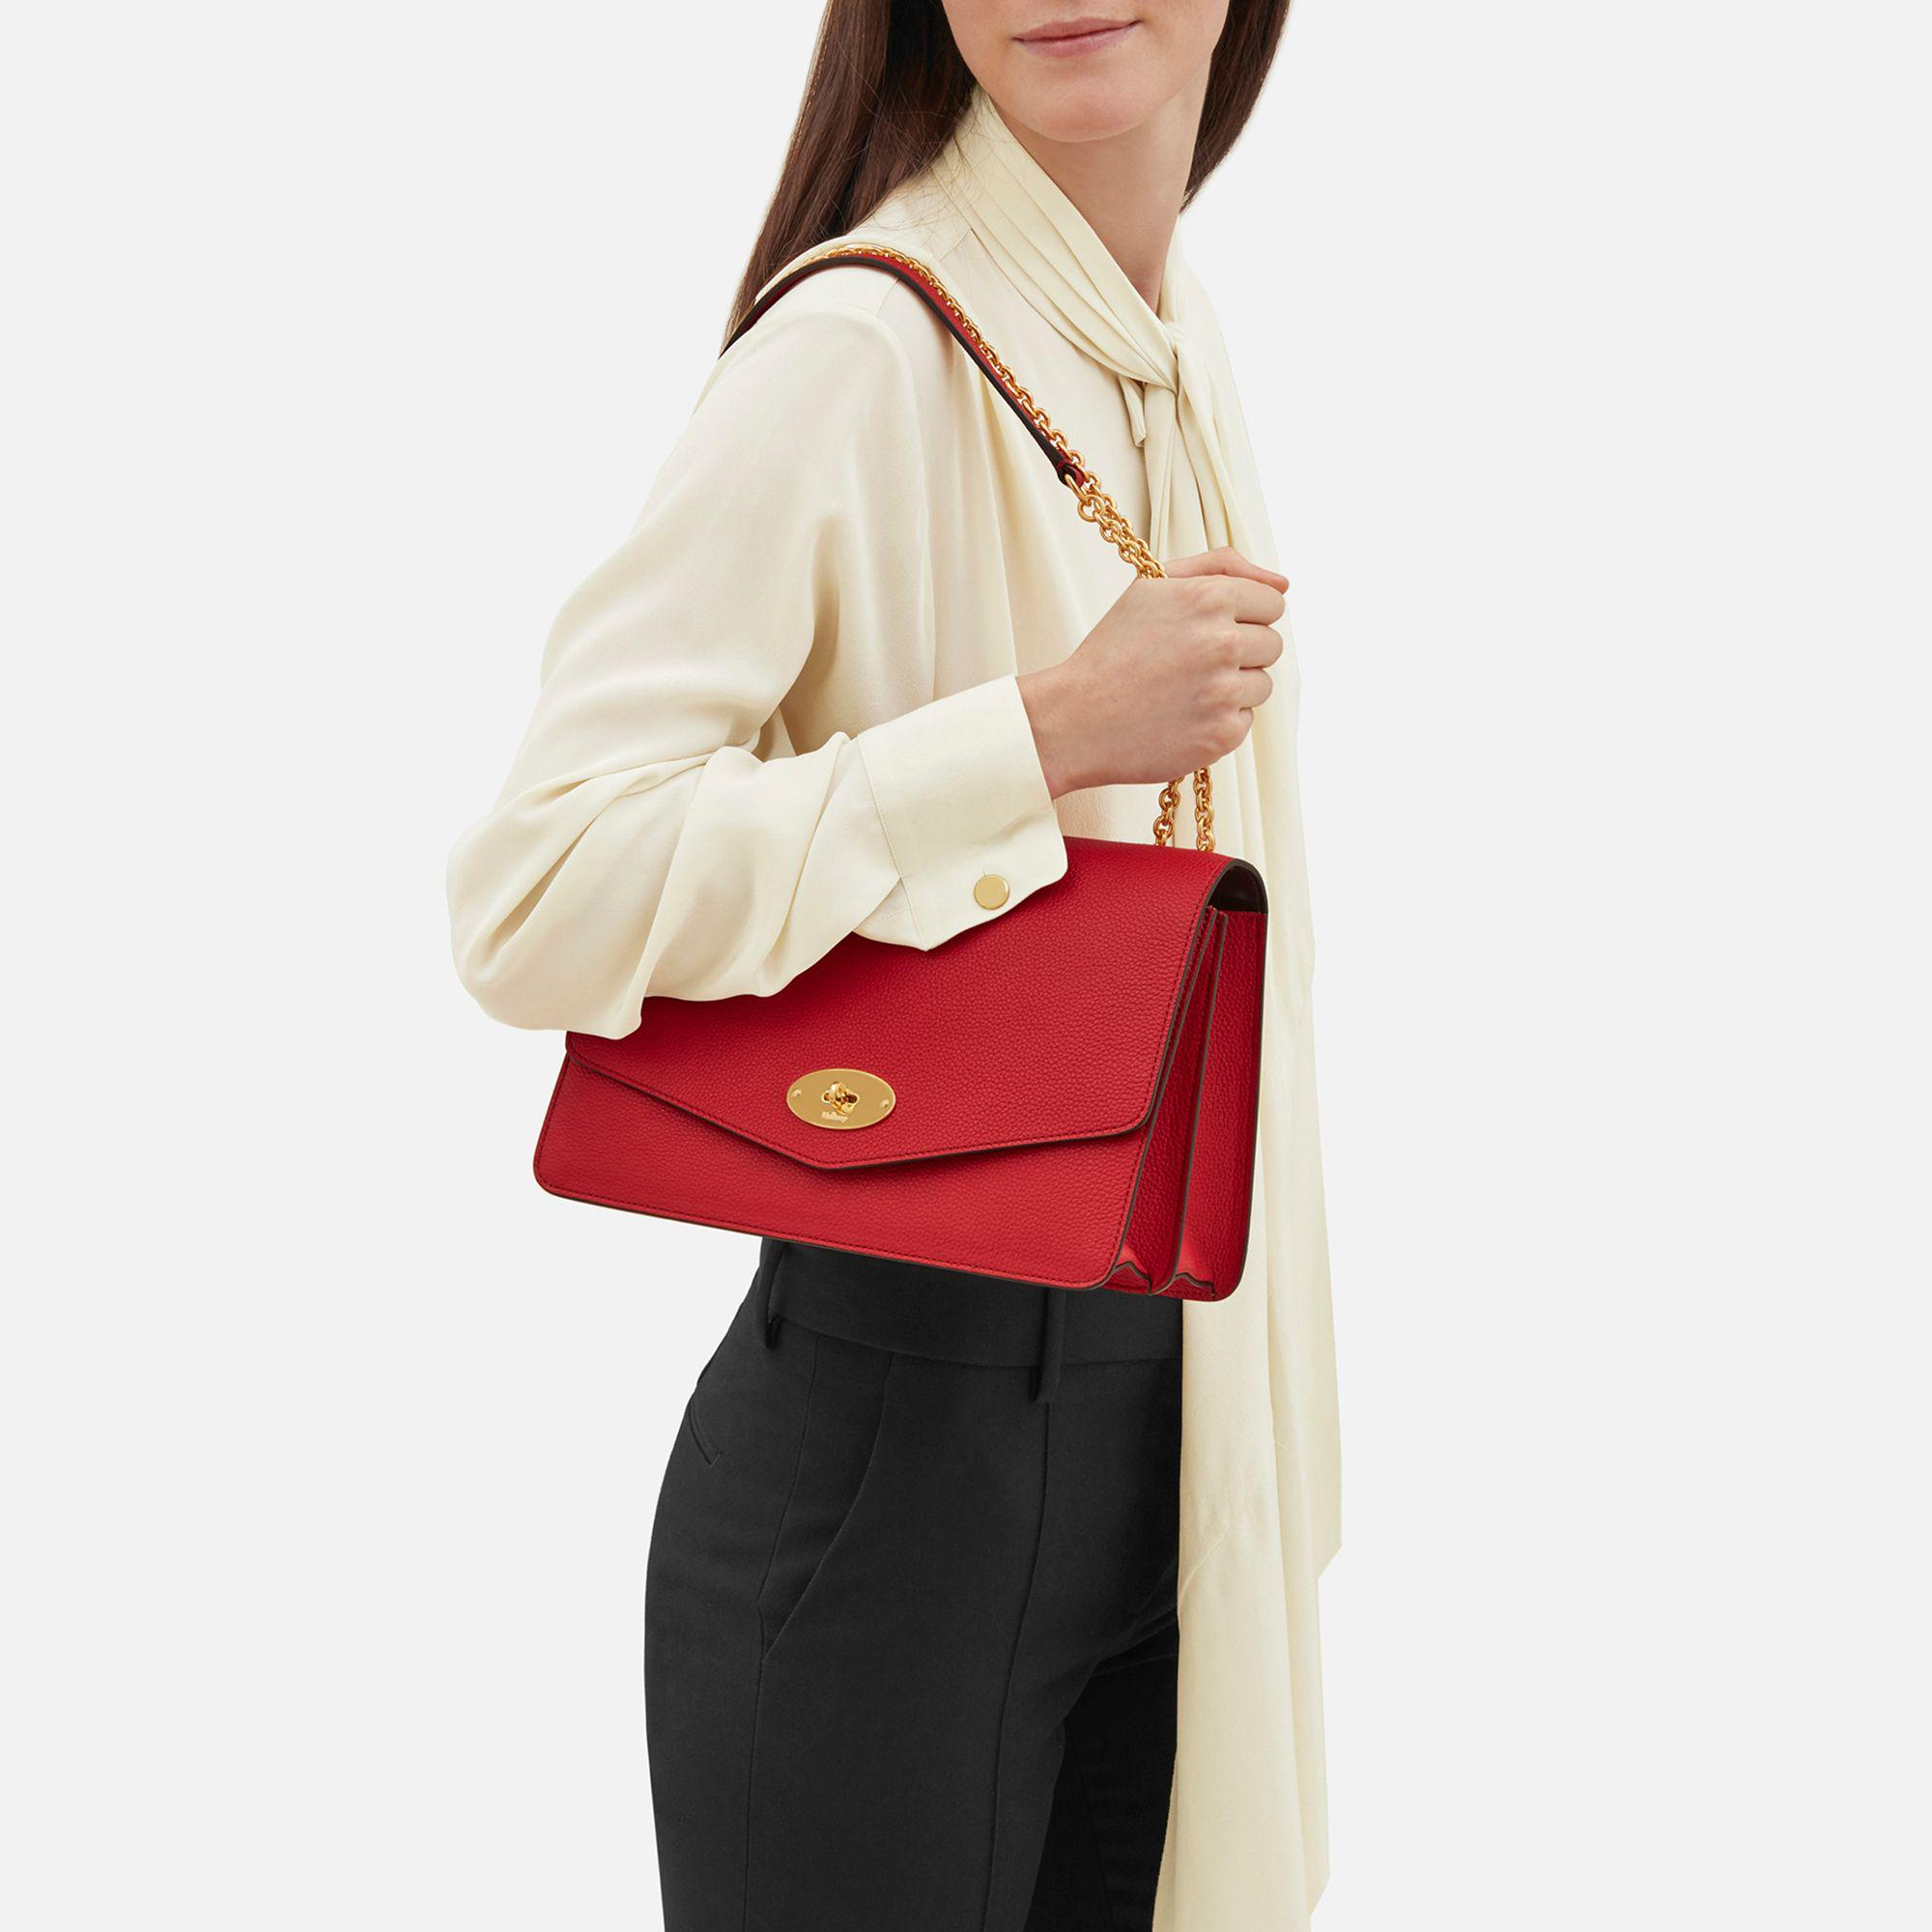 Mulberry Large Darley in Red - Lyst 0252b1eb16a44